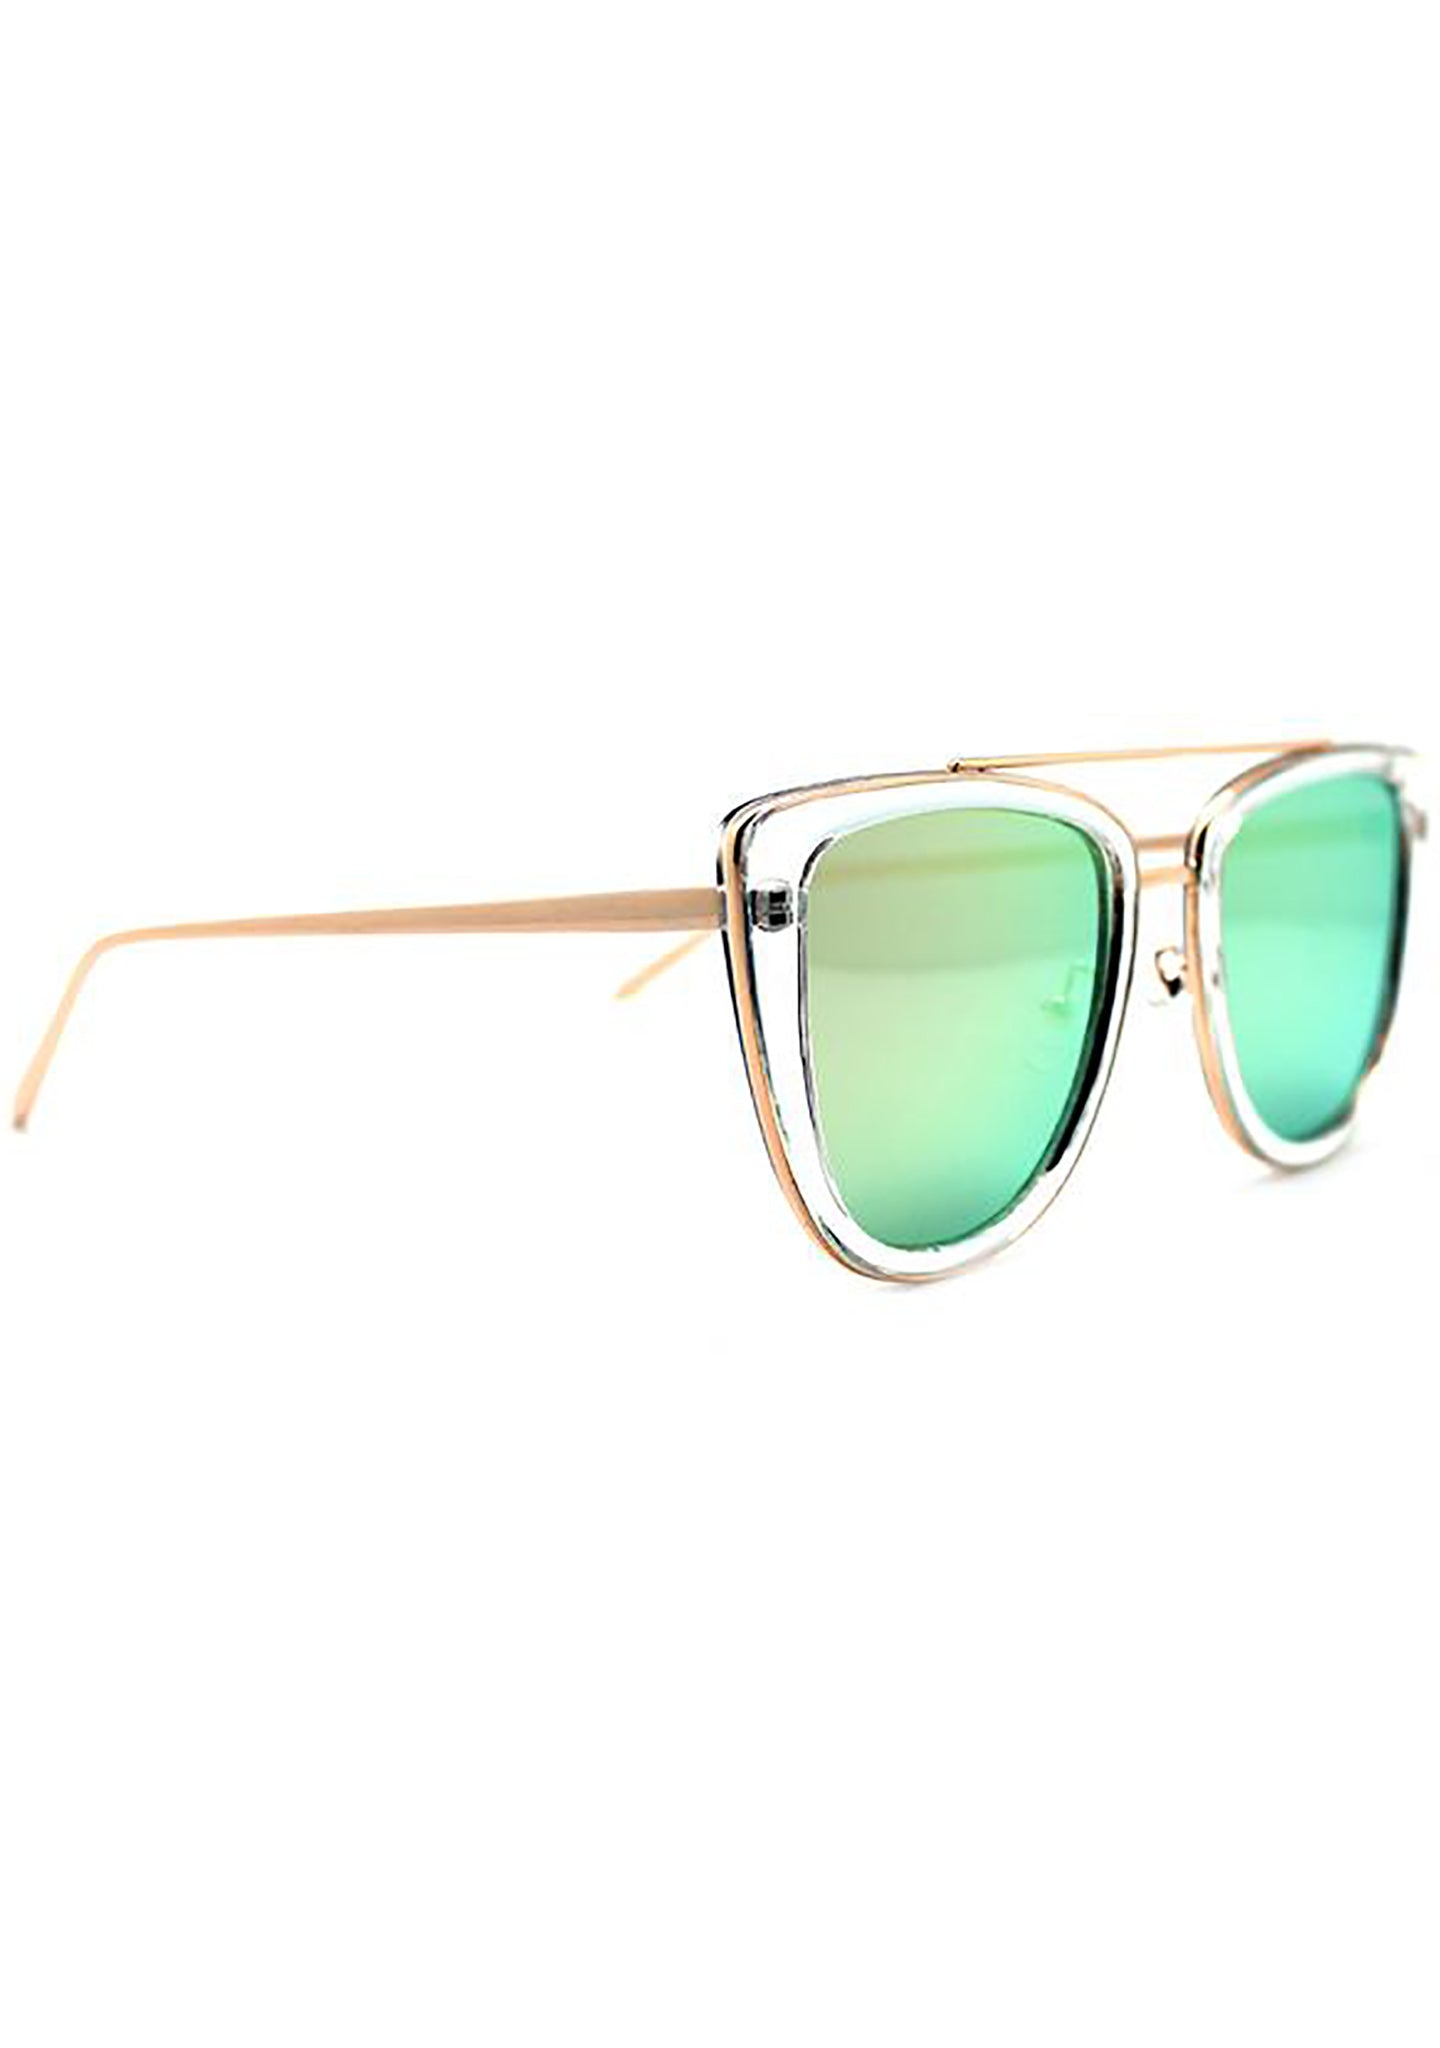 Quay Australia French Kiss Sunglasses in Clear/Rose Gold